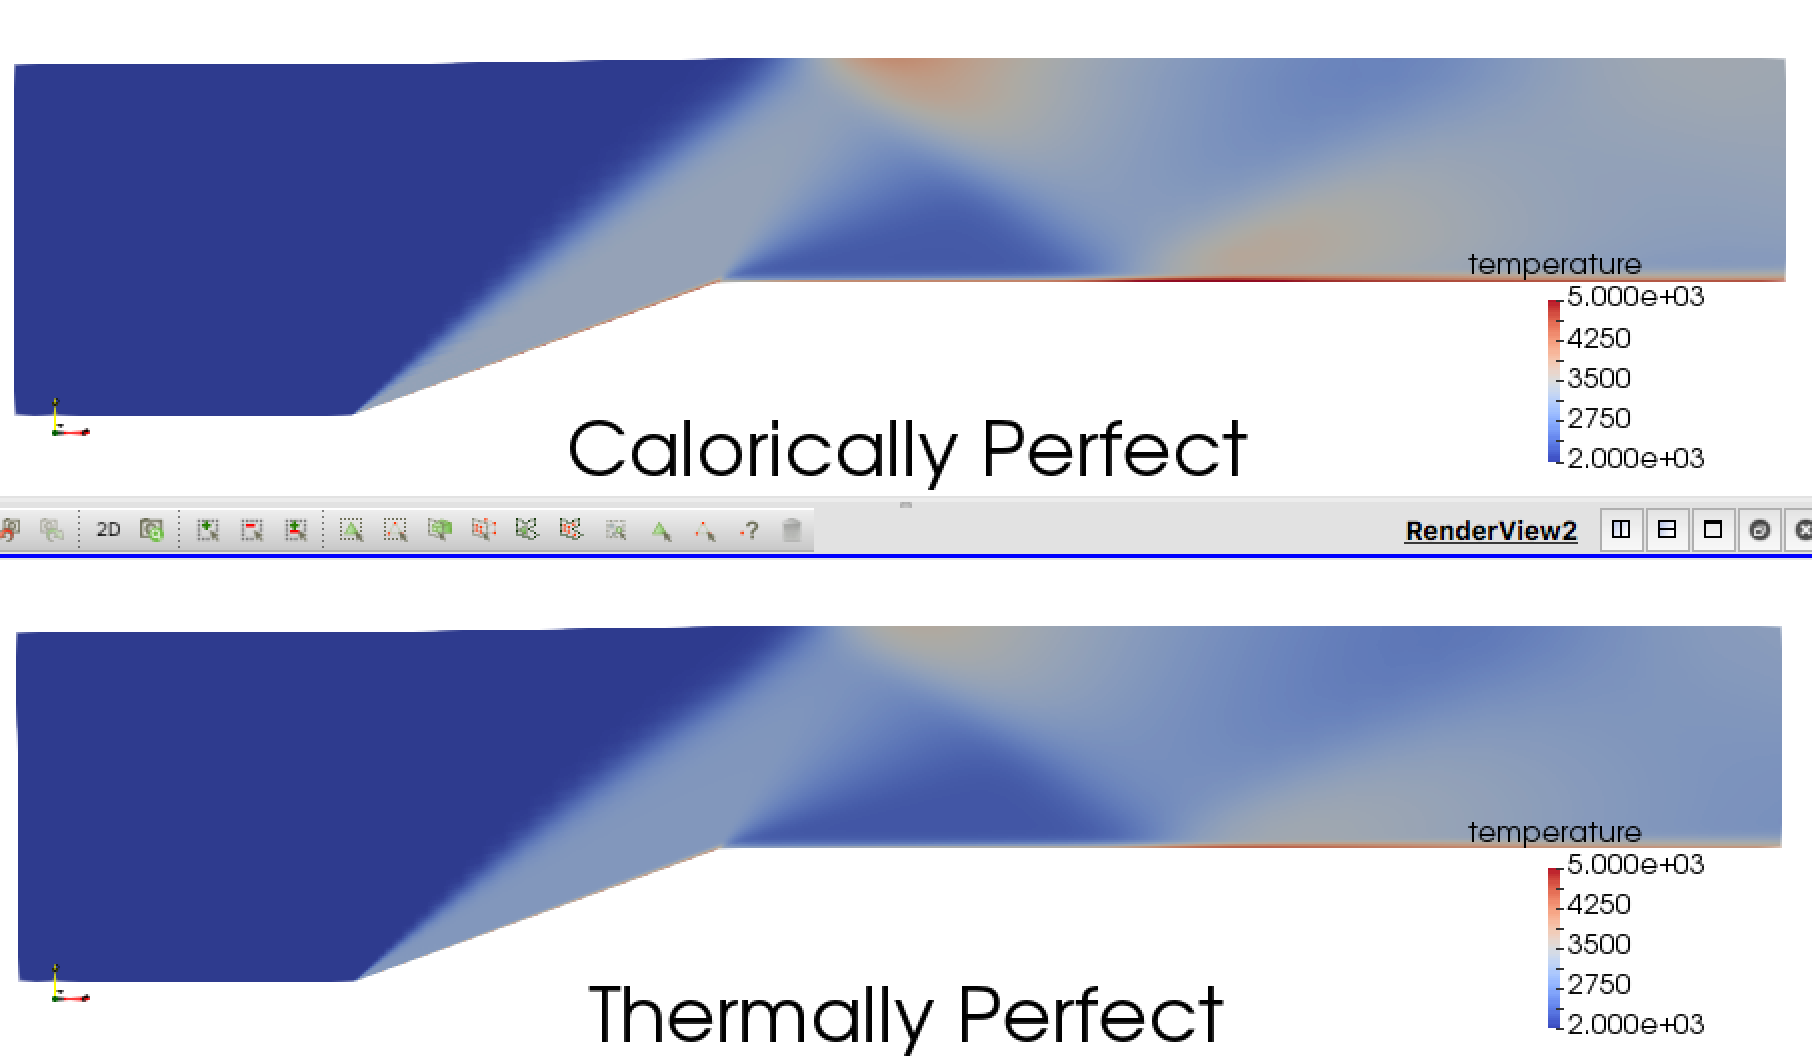 ThermallyPerfect